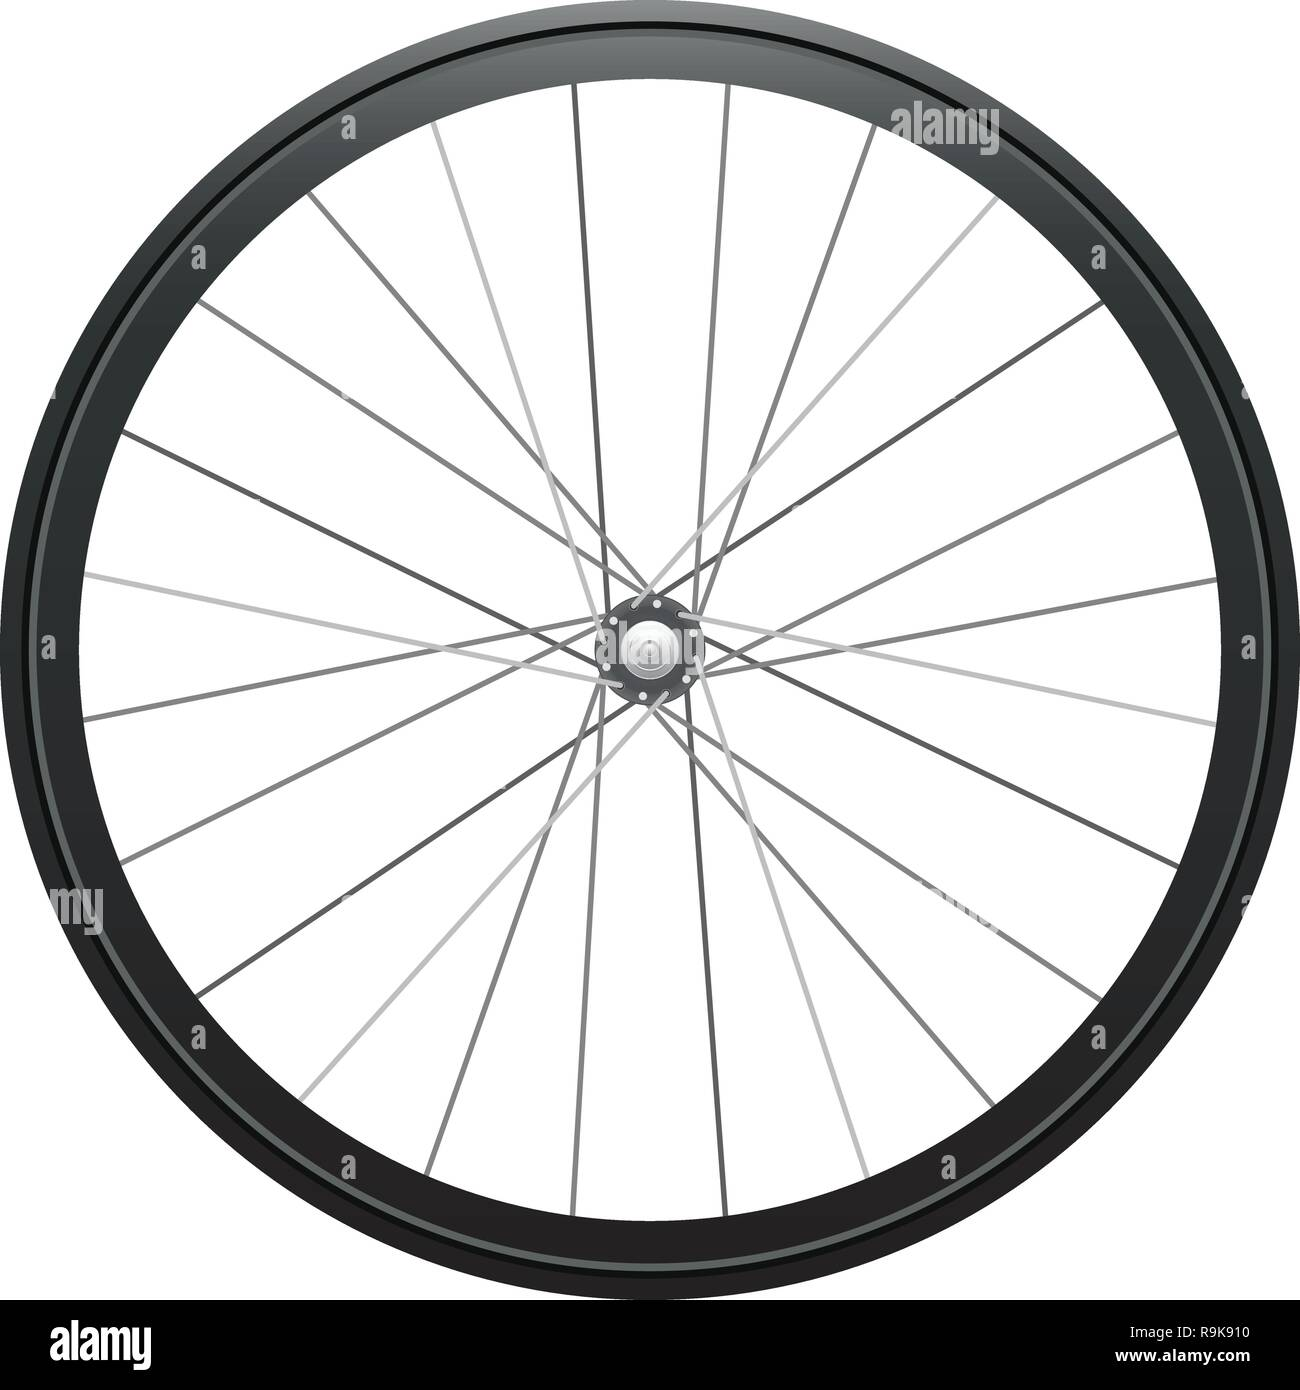 Realistic illustration: cycling wheel Isolated on white background - Stock Vector